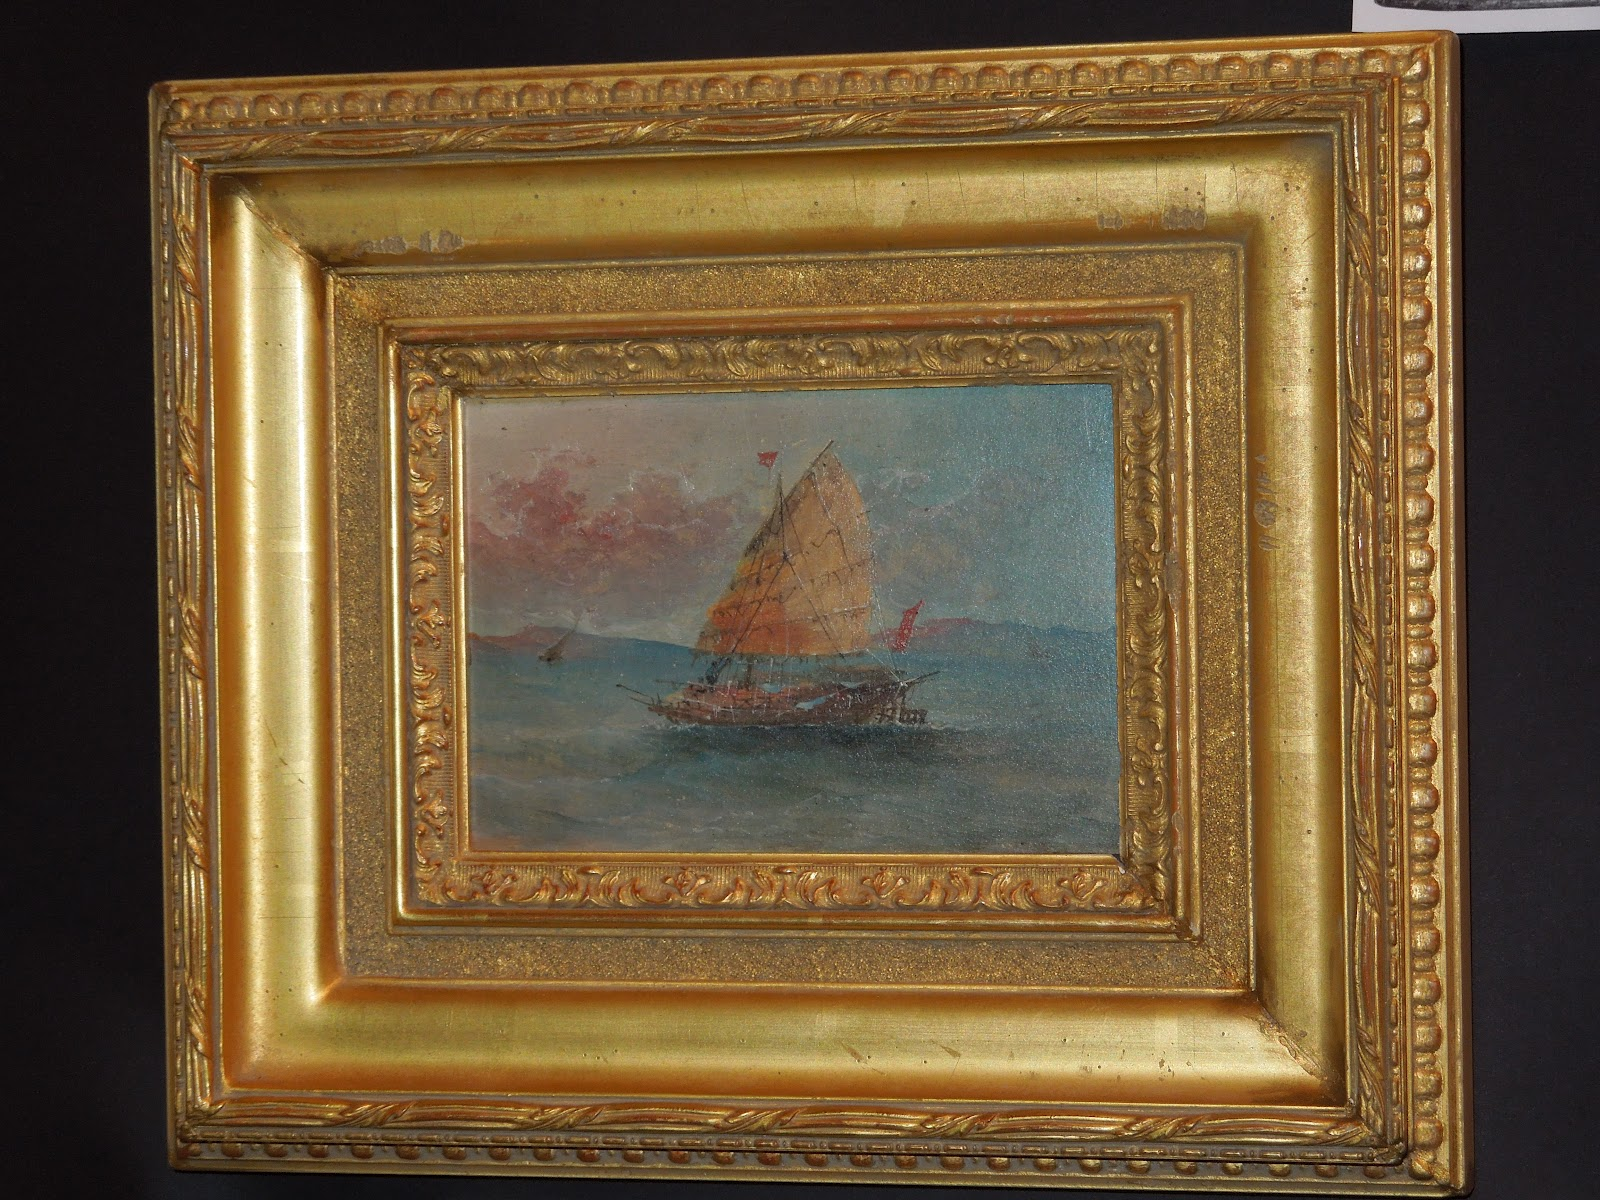 The french tangerine atlanta antique show part 4 thomas of thomas m fortner antiques was there from memphis tennessee we seemed to linger in his booth beautiful things to see yes but also to hear jeuxipadfo Gallery